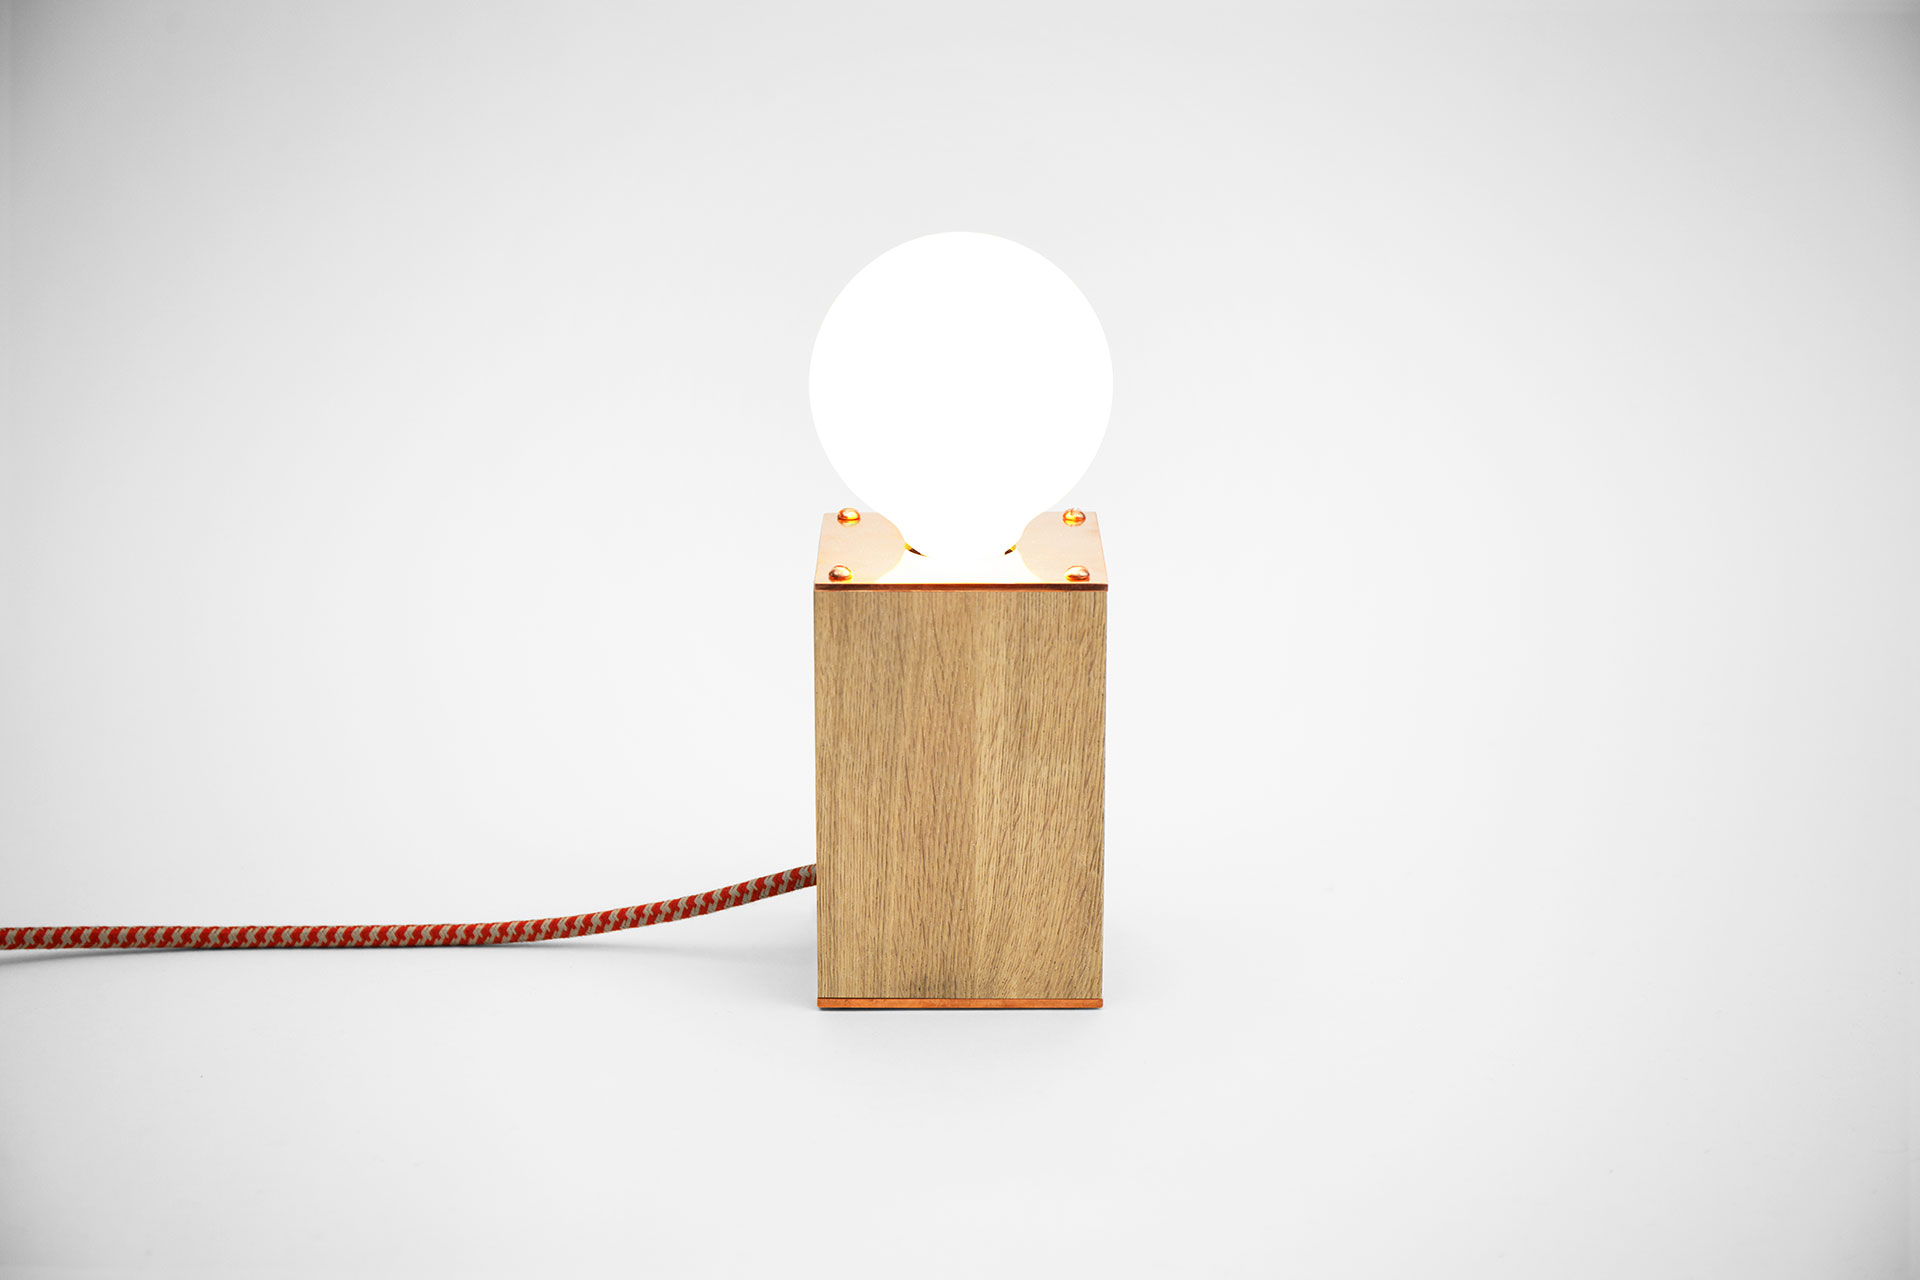 Simple bedside lamp in oak wood and fashionable copper with functional touch dimmer inspired by scandinavian design